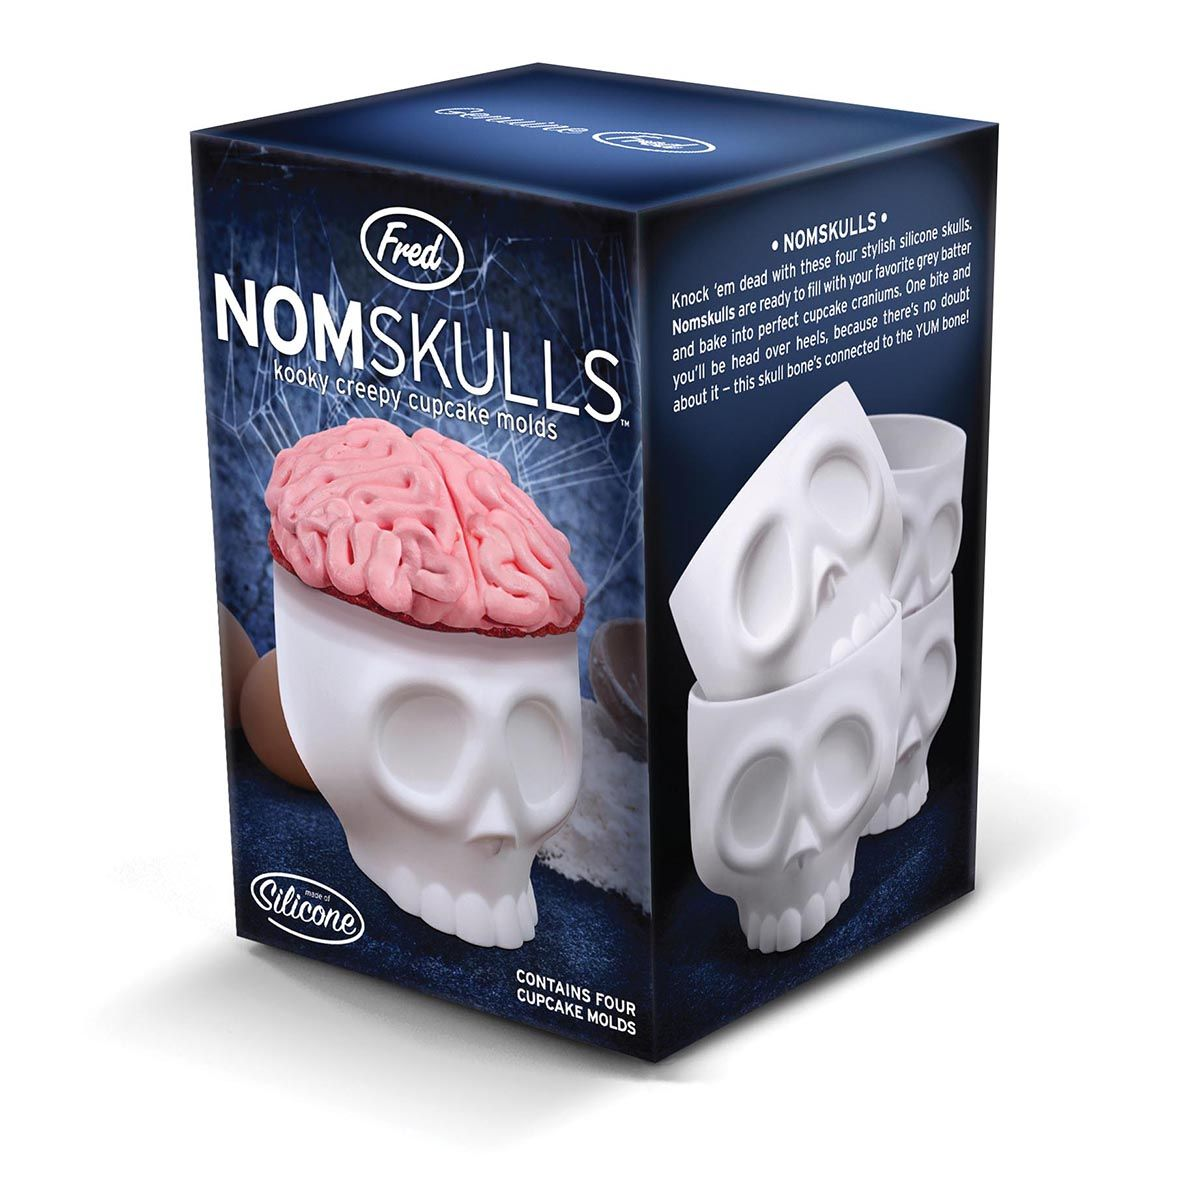 Get Your Kids Into The Kitchen With These Spooky Skeletal Bake Moulds. Fred  Nomskulls Is The Perfect Companion When Baking For Childrenu0027s Parties.